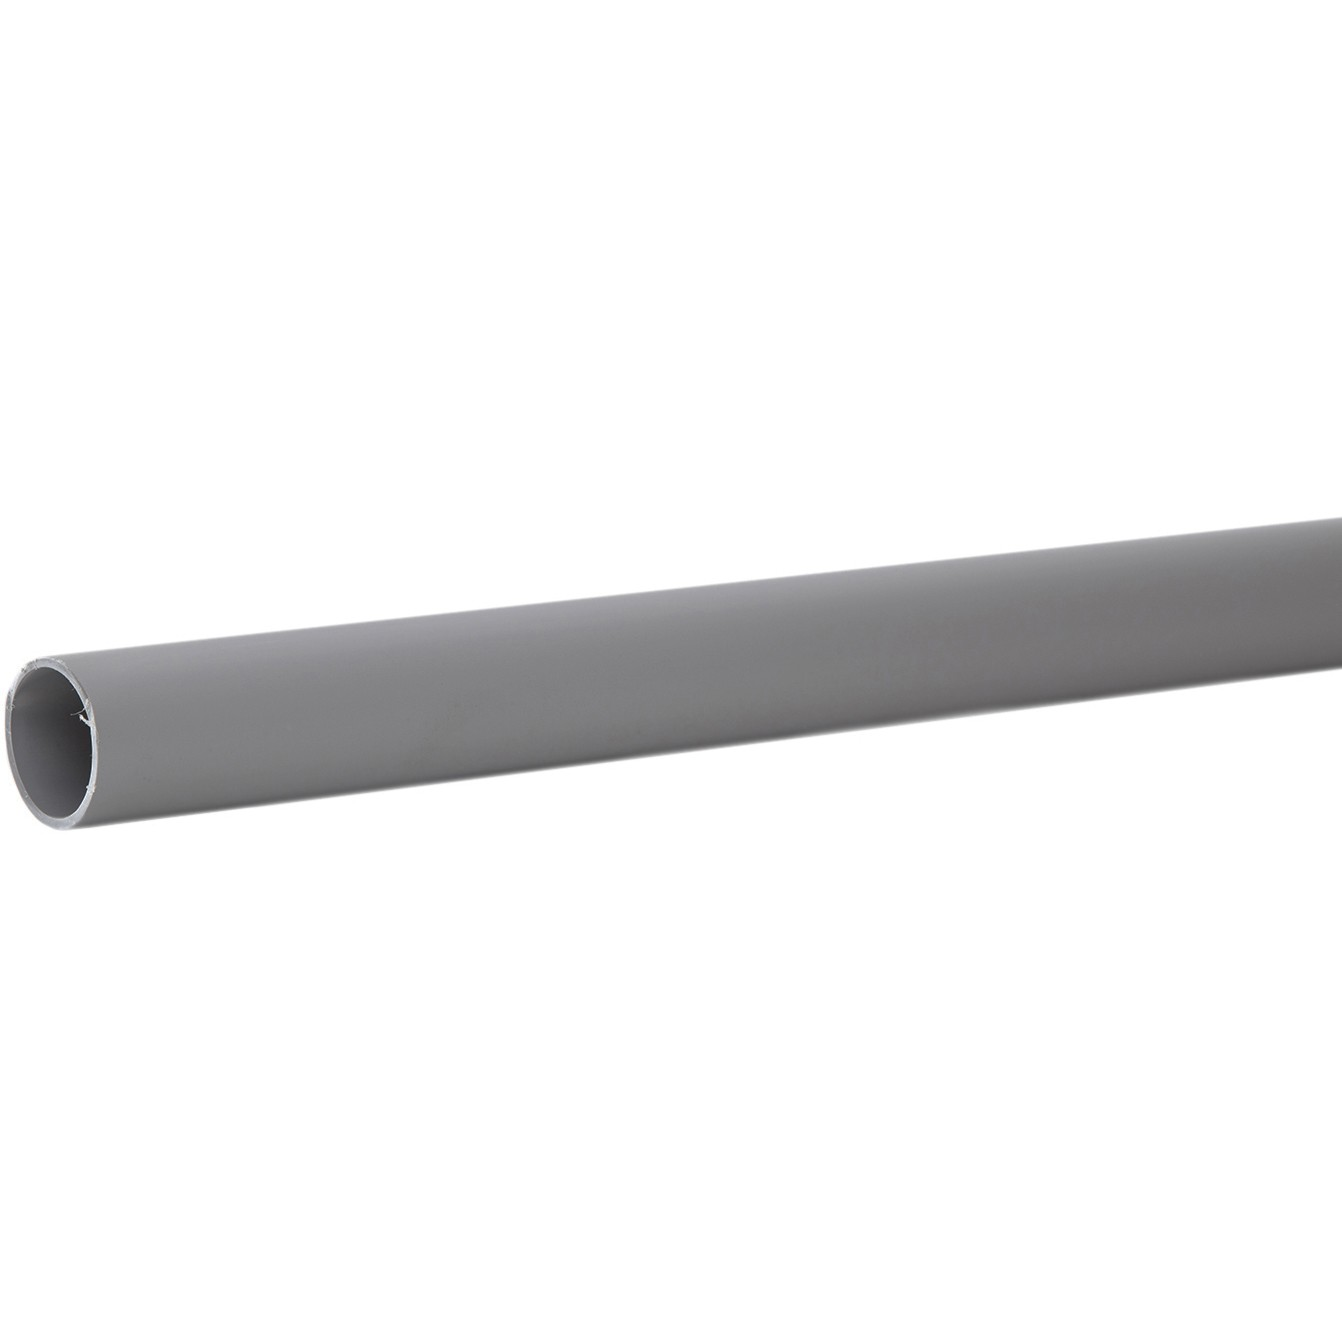 Polypipe 32mm Push Fit Waste Pipe - Grey, 3 metre